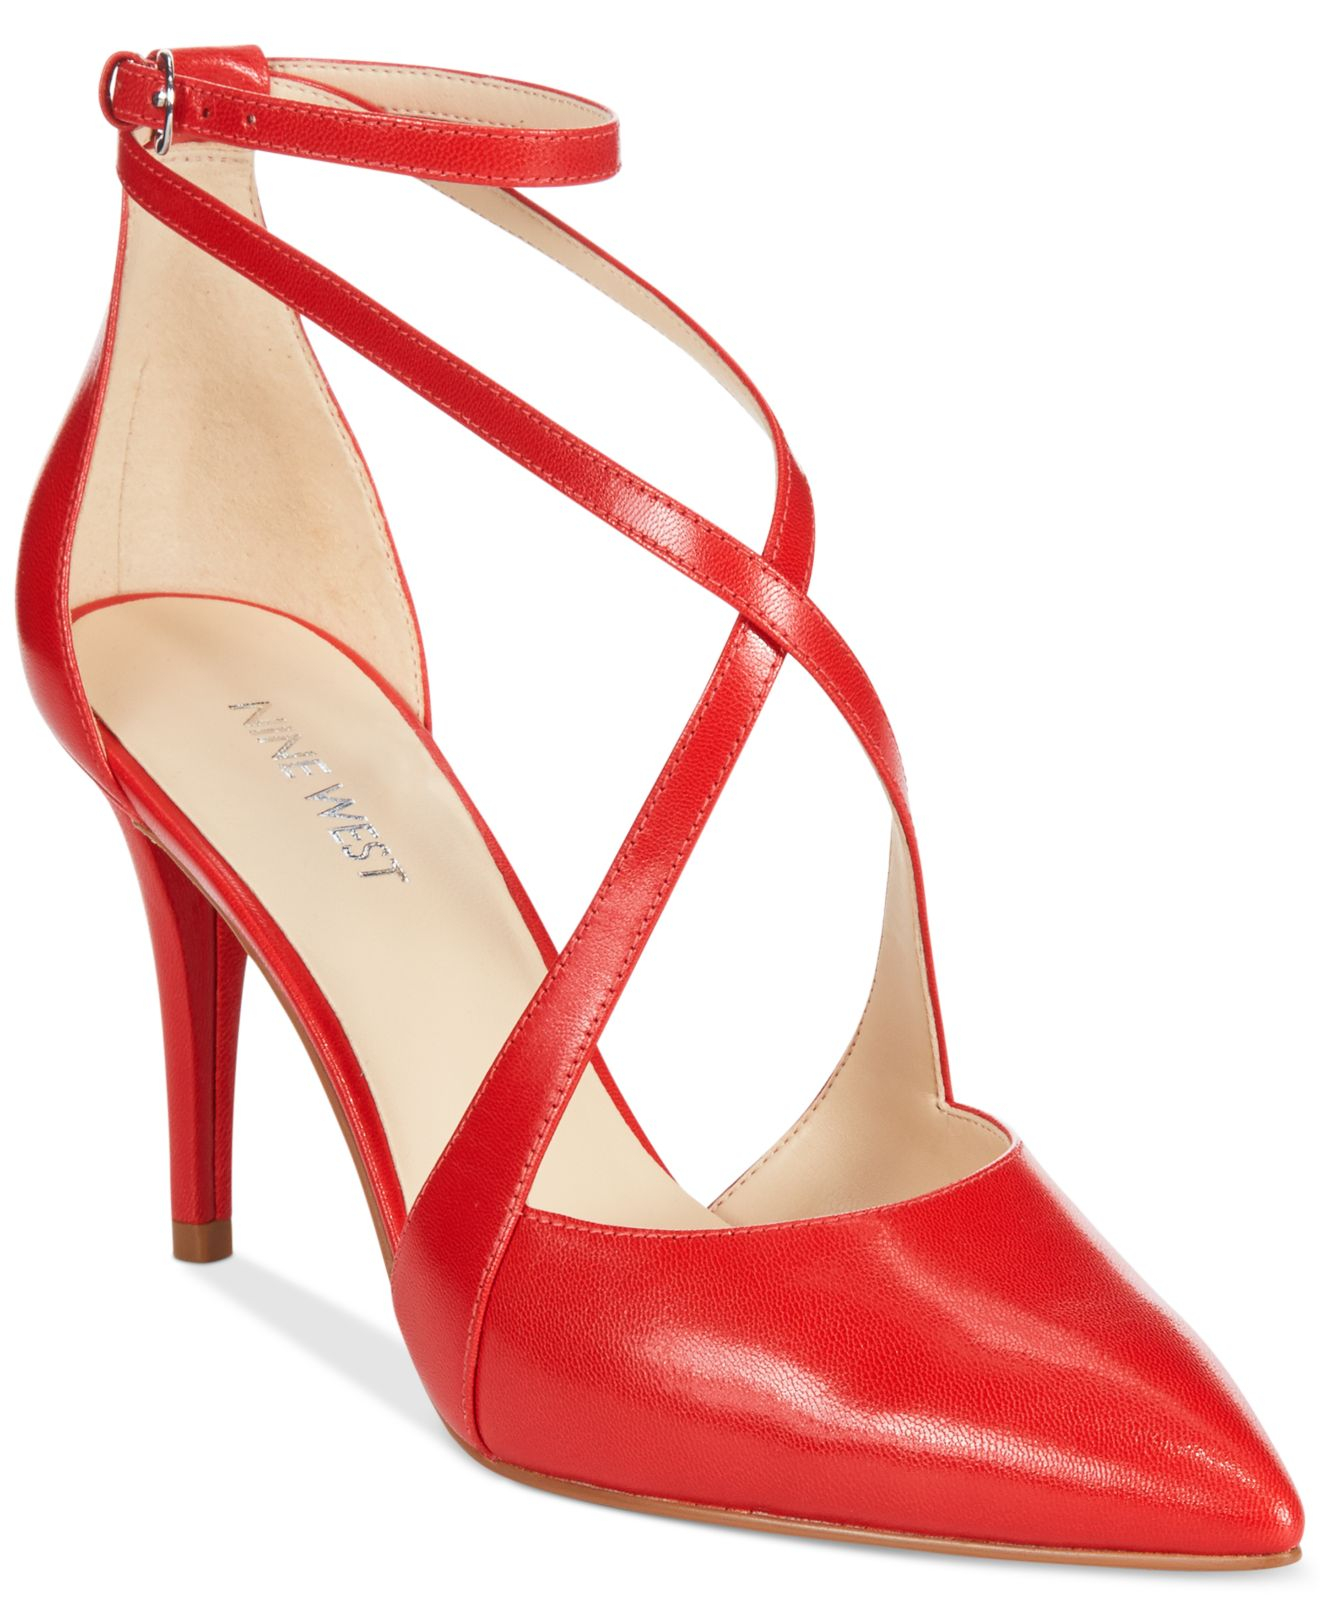 Lyst - Nine West Peacesign Pumps in Red 4d797c293